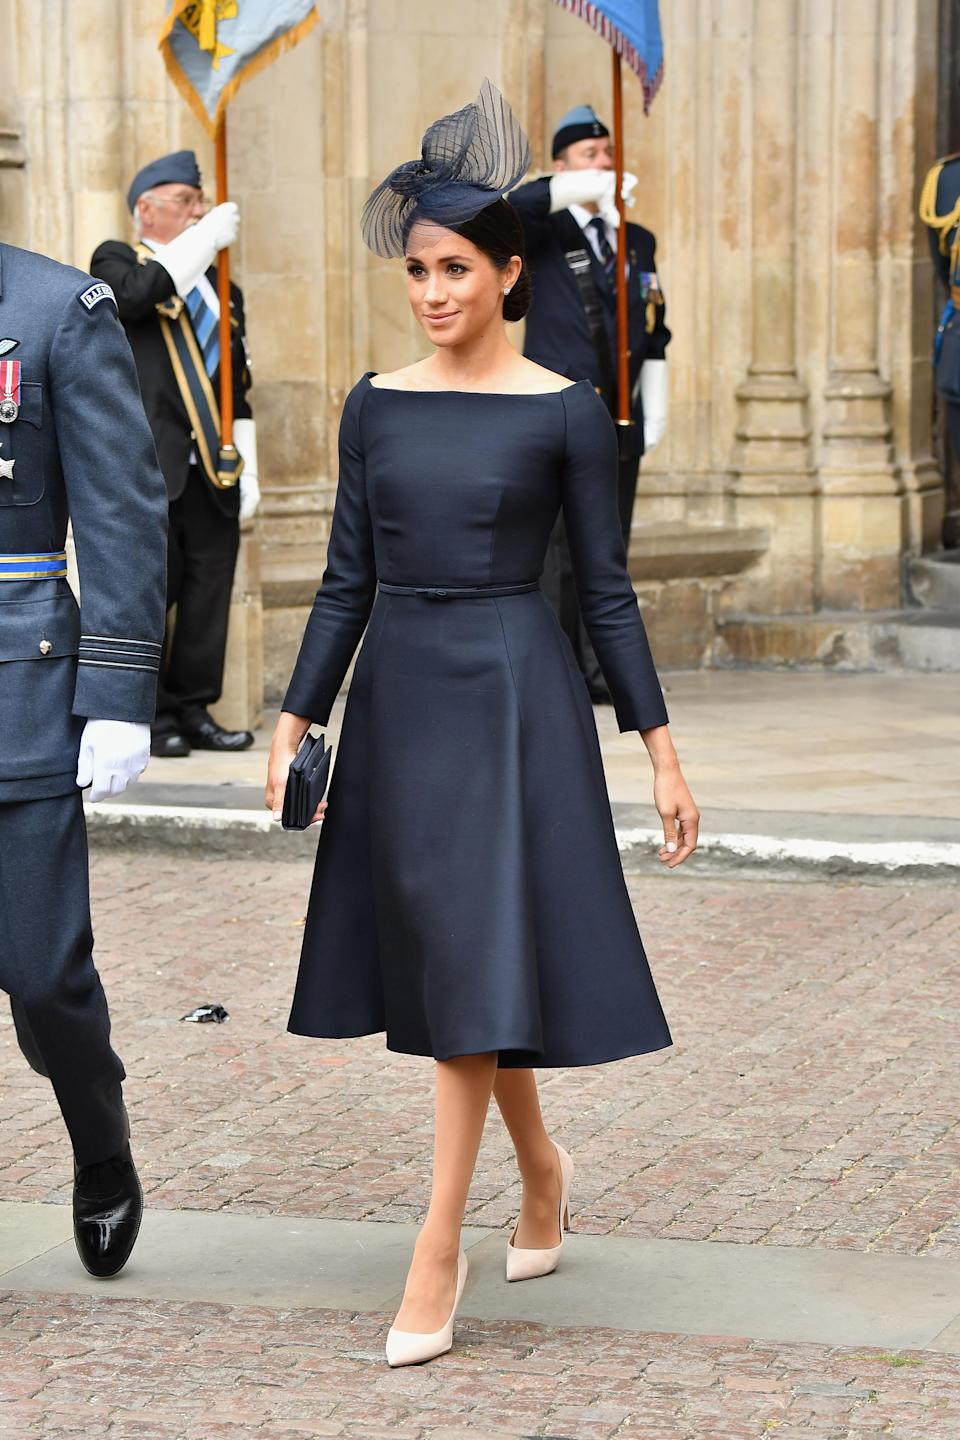 Outfit 1: The Duchess of Sussex in Dior [Photo: Getty]